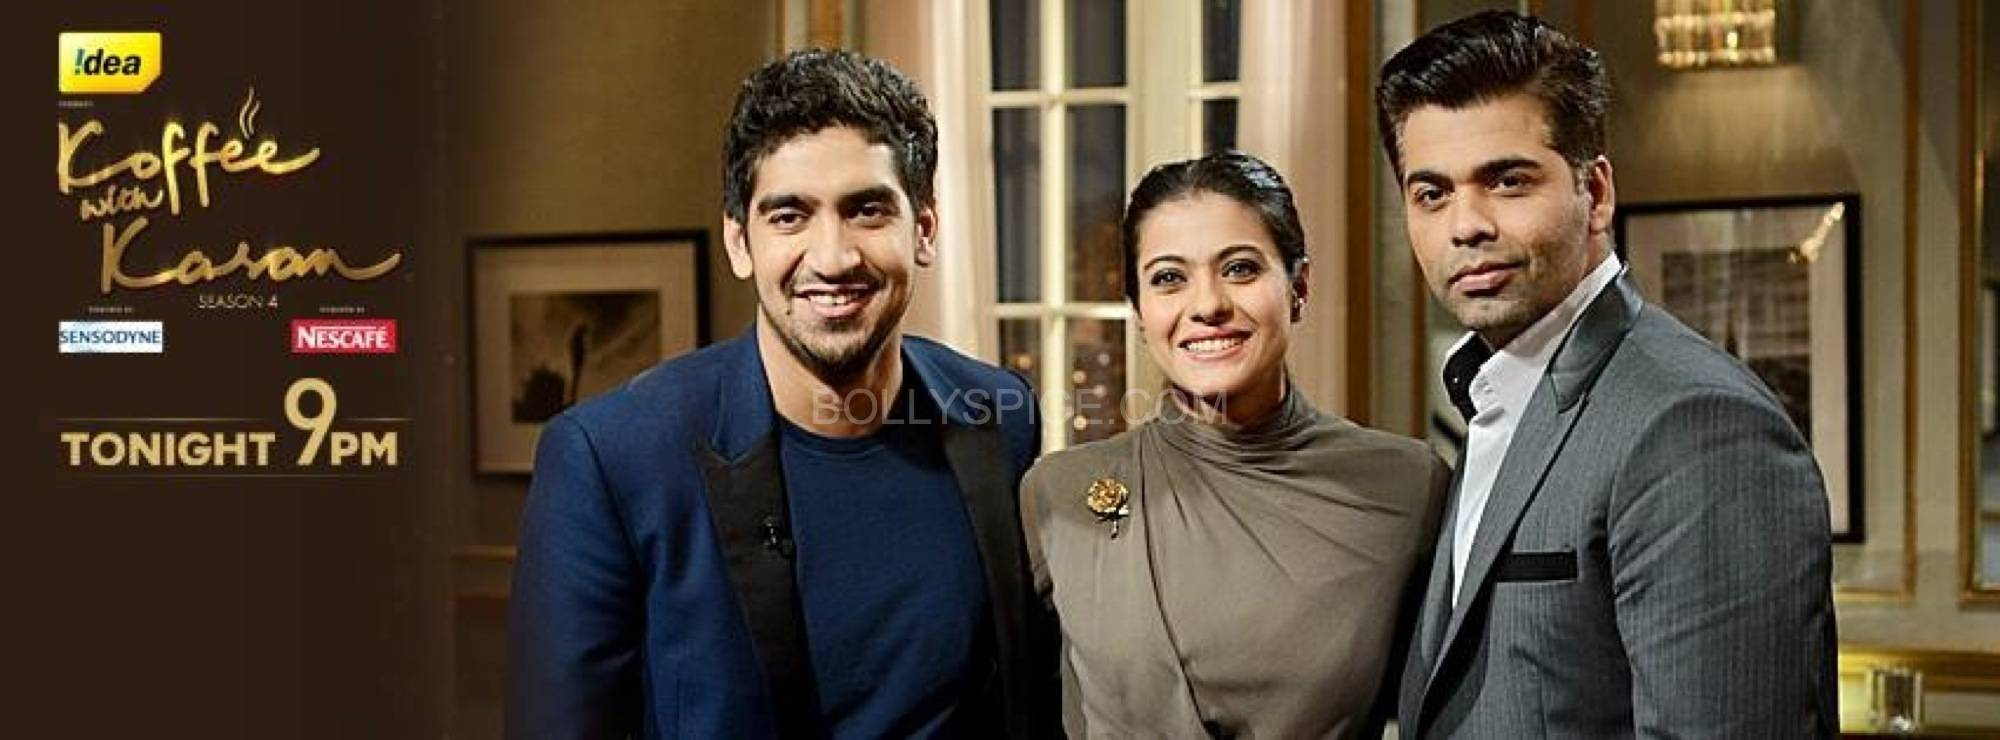 kwkkajolayan5 Koffee With Karan 4 preview   Kajol and Ayan Mukherjee